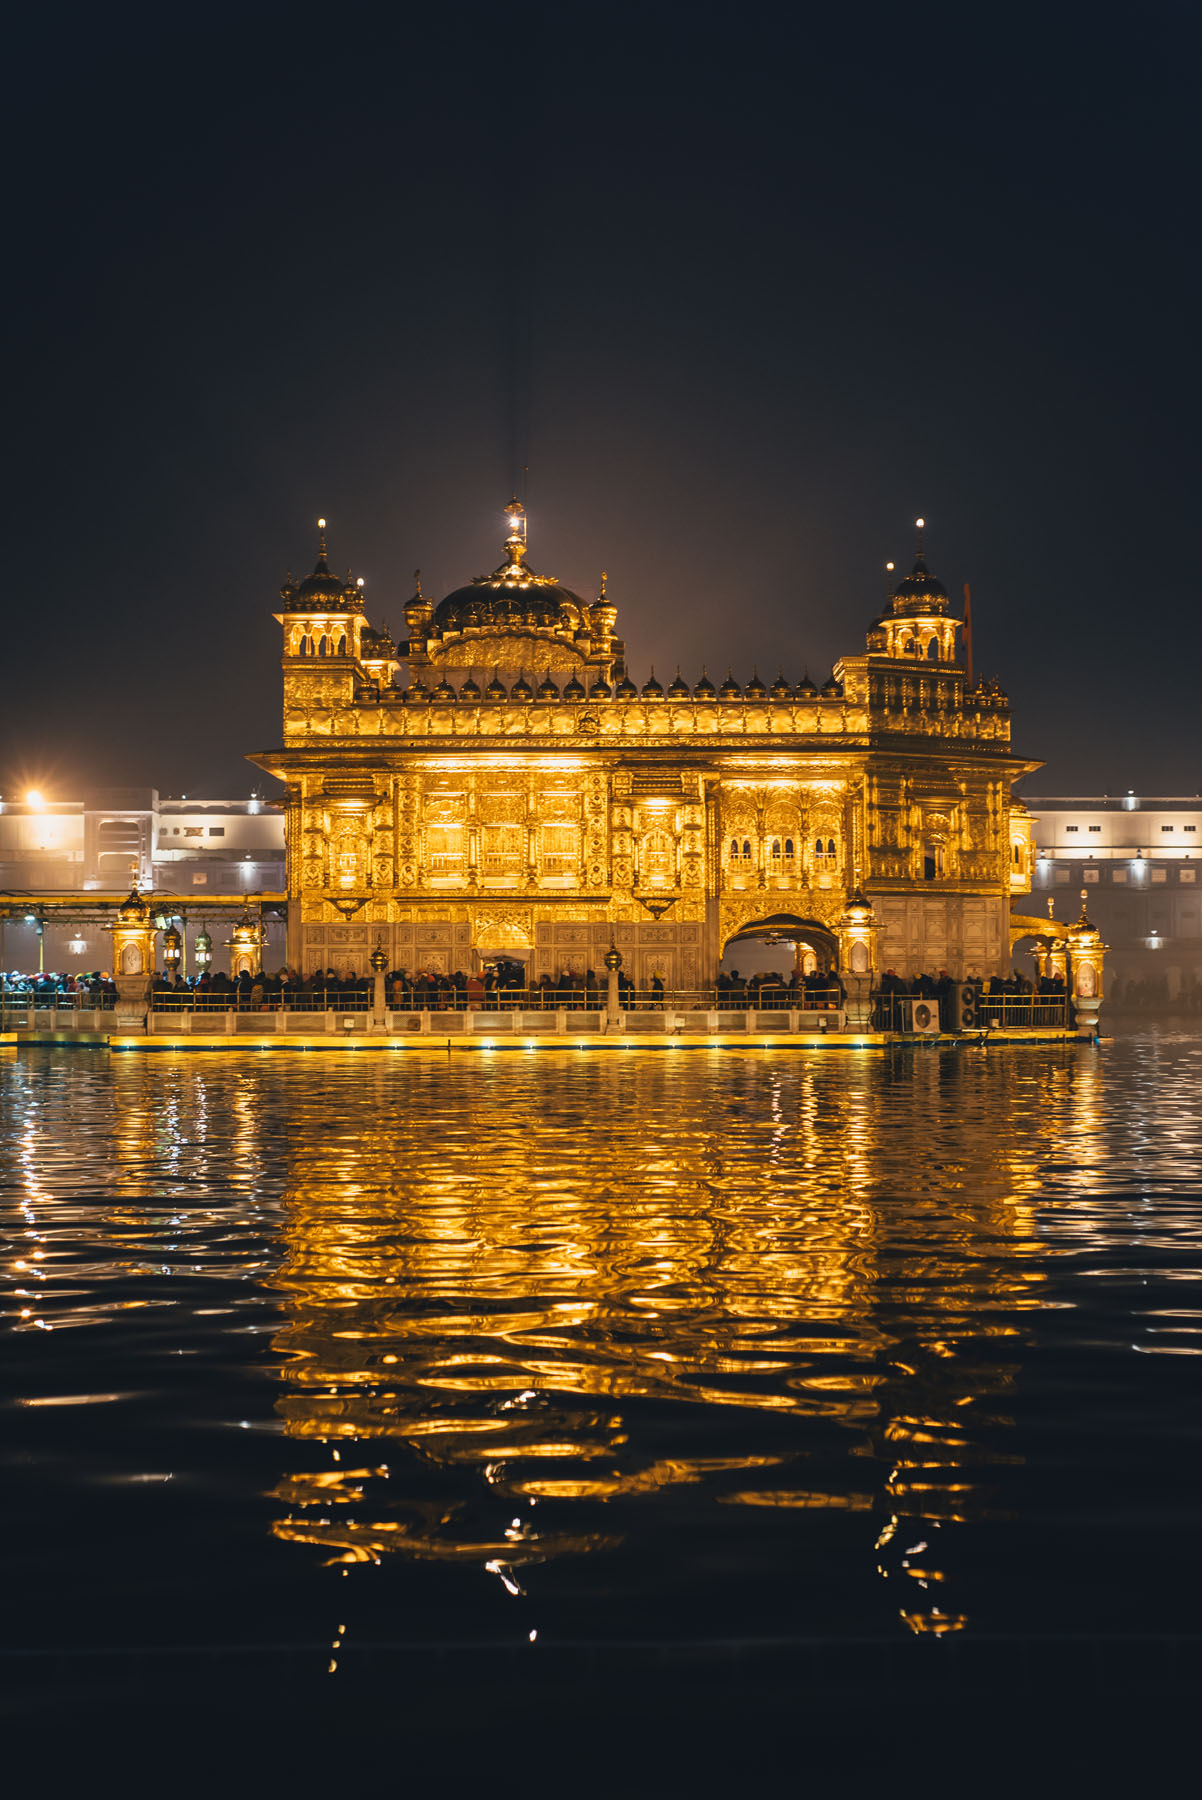 The lights shined brighter than stars that night.